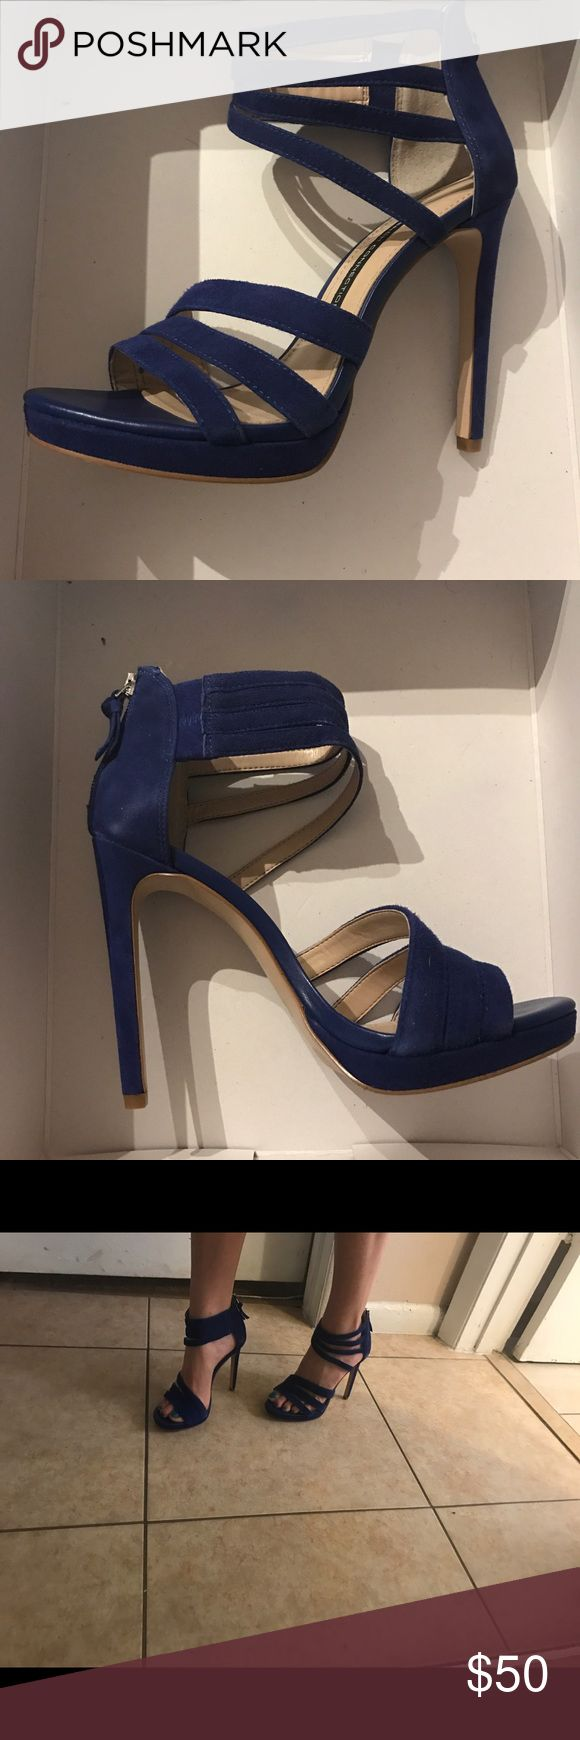 """French connection sexy heeled sandals Sexy and fun cobalt blue heeled sandals by French Connection! Add a pop of color to any outfit. In perfect condition, very high quality shoe 👠 5"""" heel French Connection Shoes"""